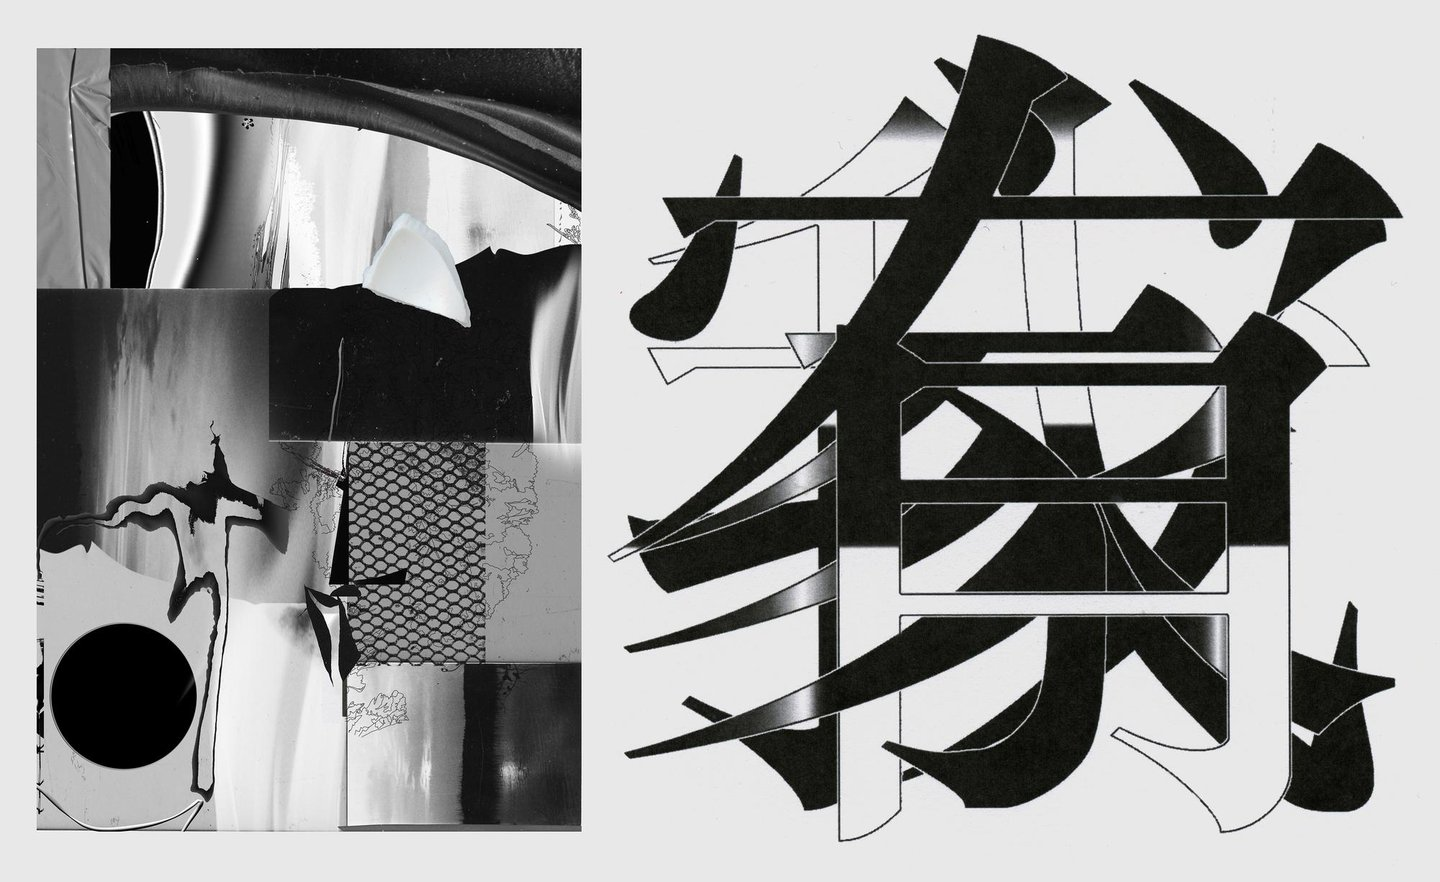 From graphic designer to fine artist, David Linchen explores how symbols become entangled with identity